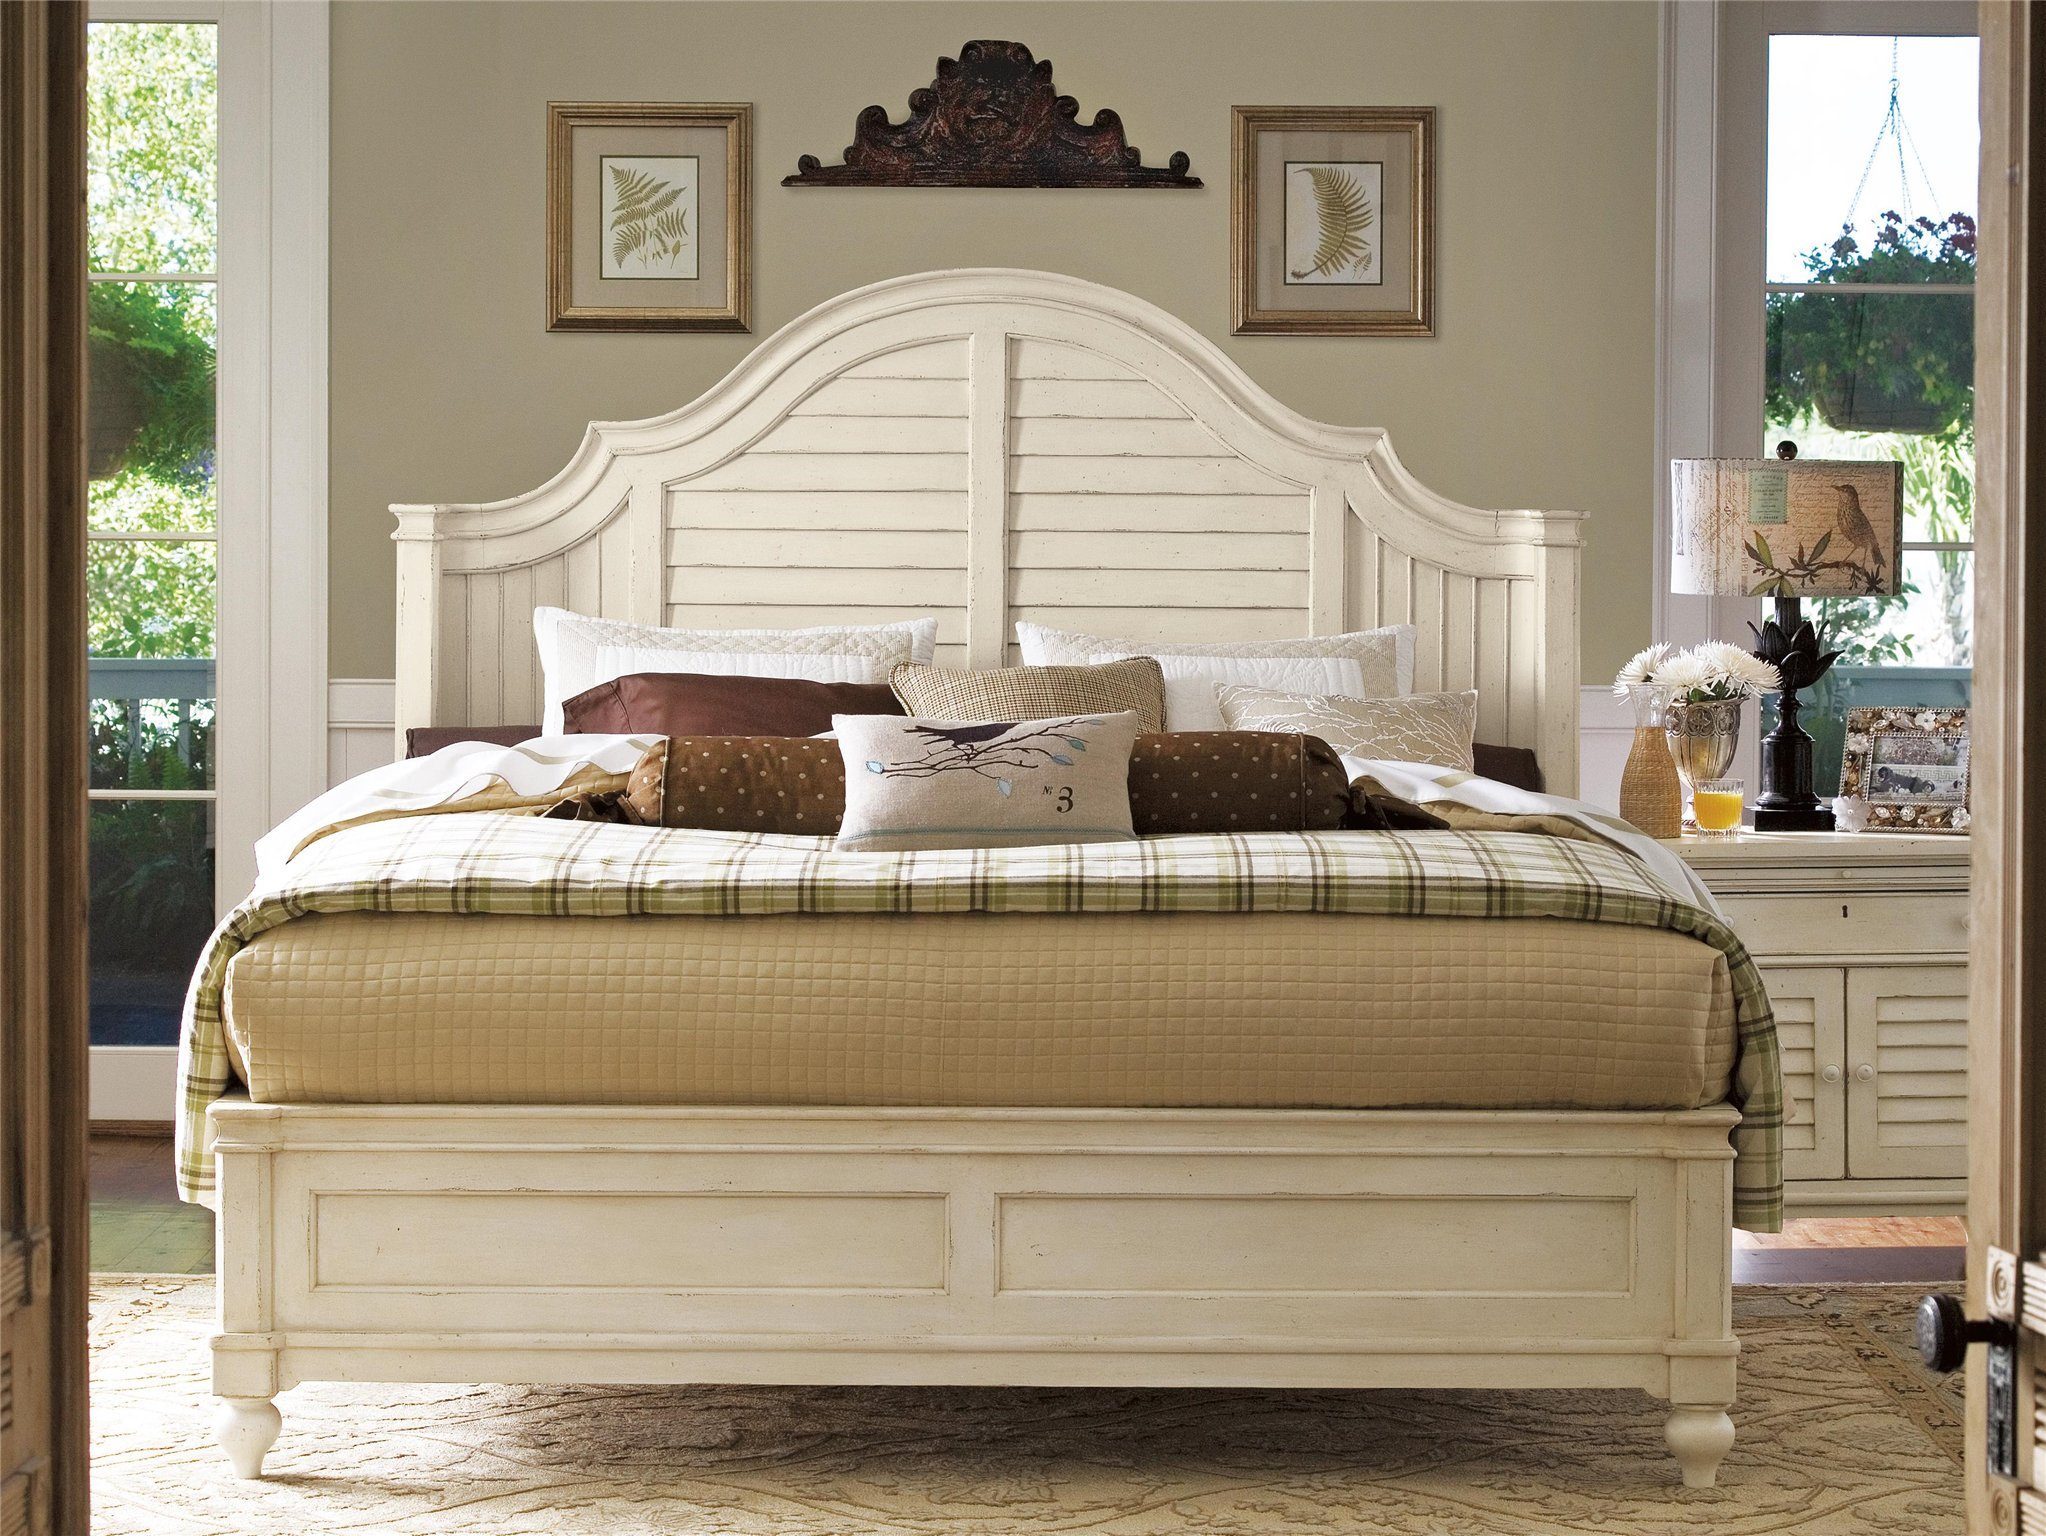 paula deen bedroom furniture collection. steel magnolia bed (queen). loading zoom paula deen bedroom furniture collection